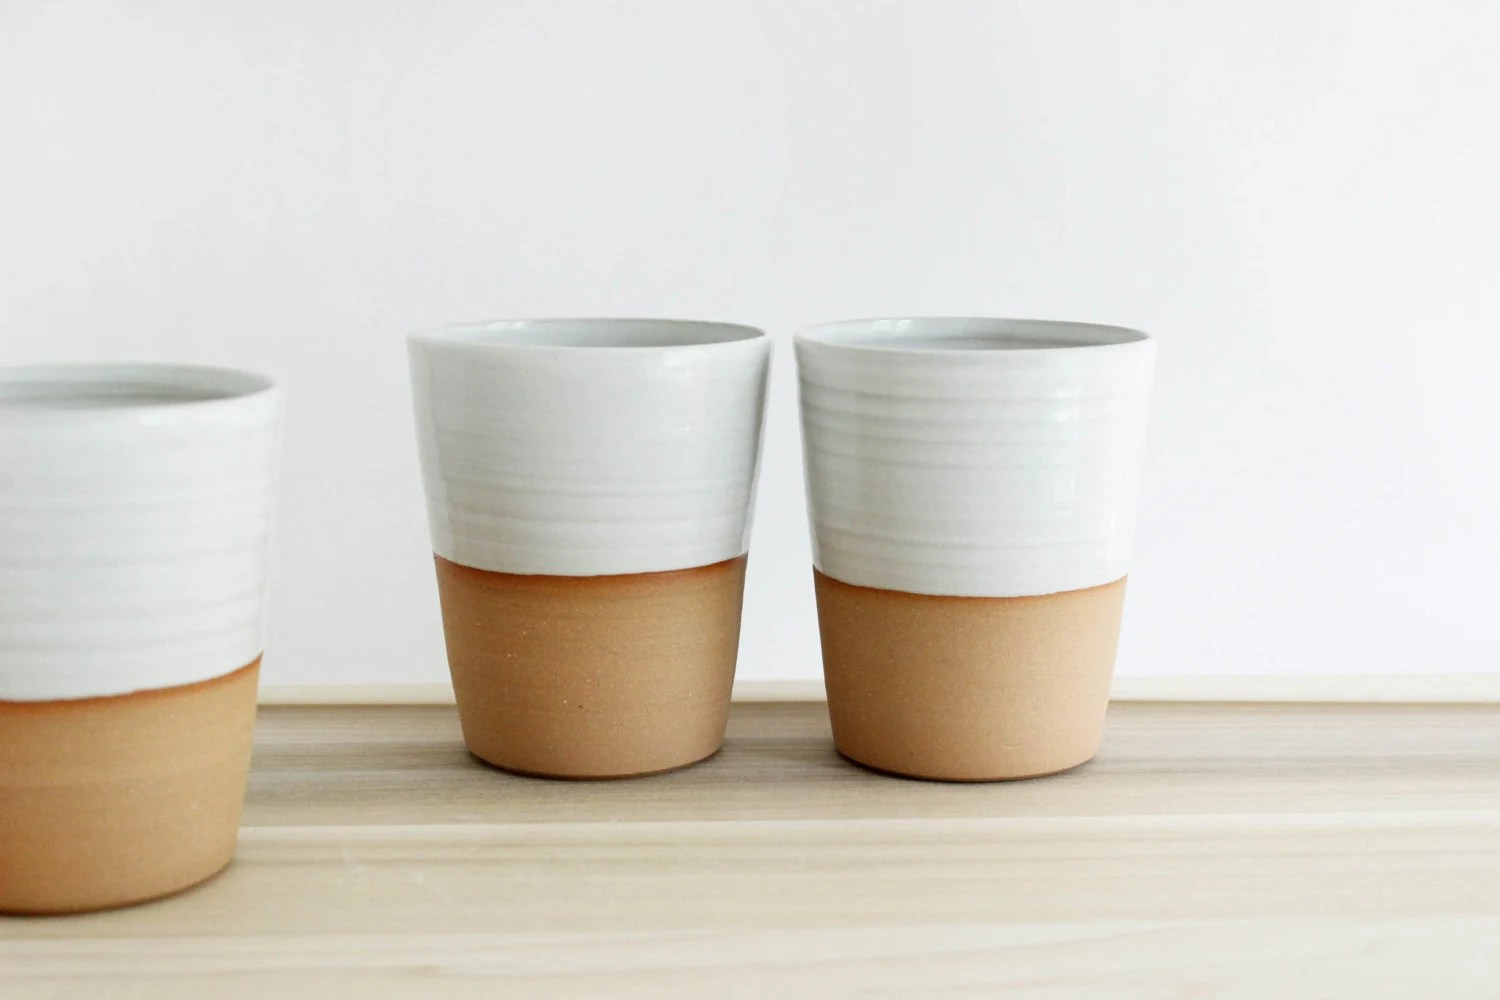 White Ceramic Coffee Cups Four Mugs Without Handles White Minimalist Ceramic